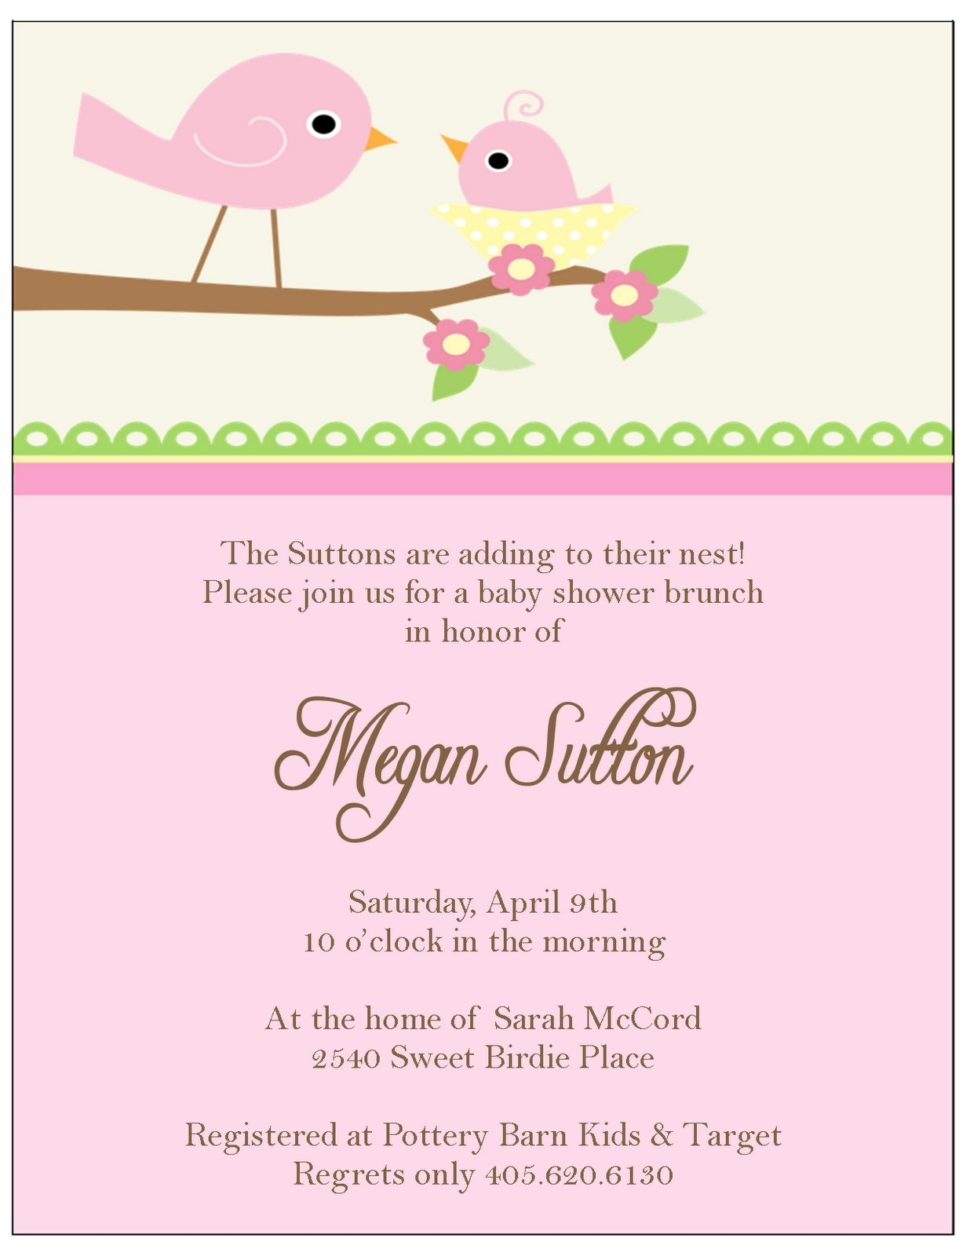 Medium Size of Baby Shower:delightful Baby Shower Invitation Wording Picture Designs Best Baby Shower Gifts 2018 Baby Shower Hostess Gifts Throwing A Baby Shower Unique Baby Shower Favors Baby Shower Halls Baby Shower Locations